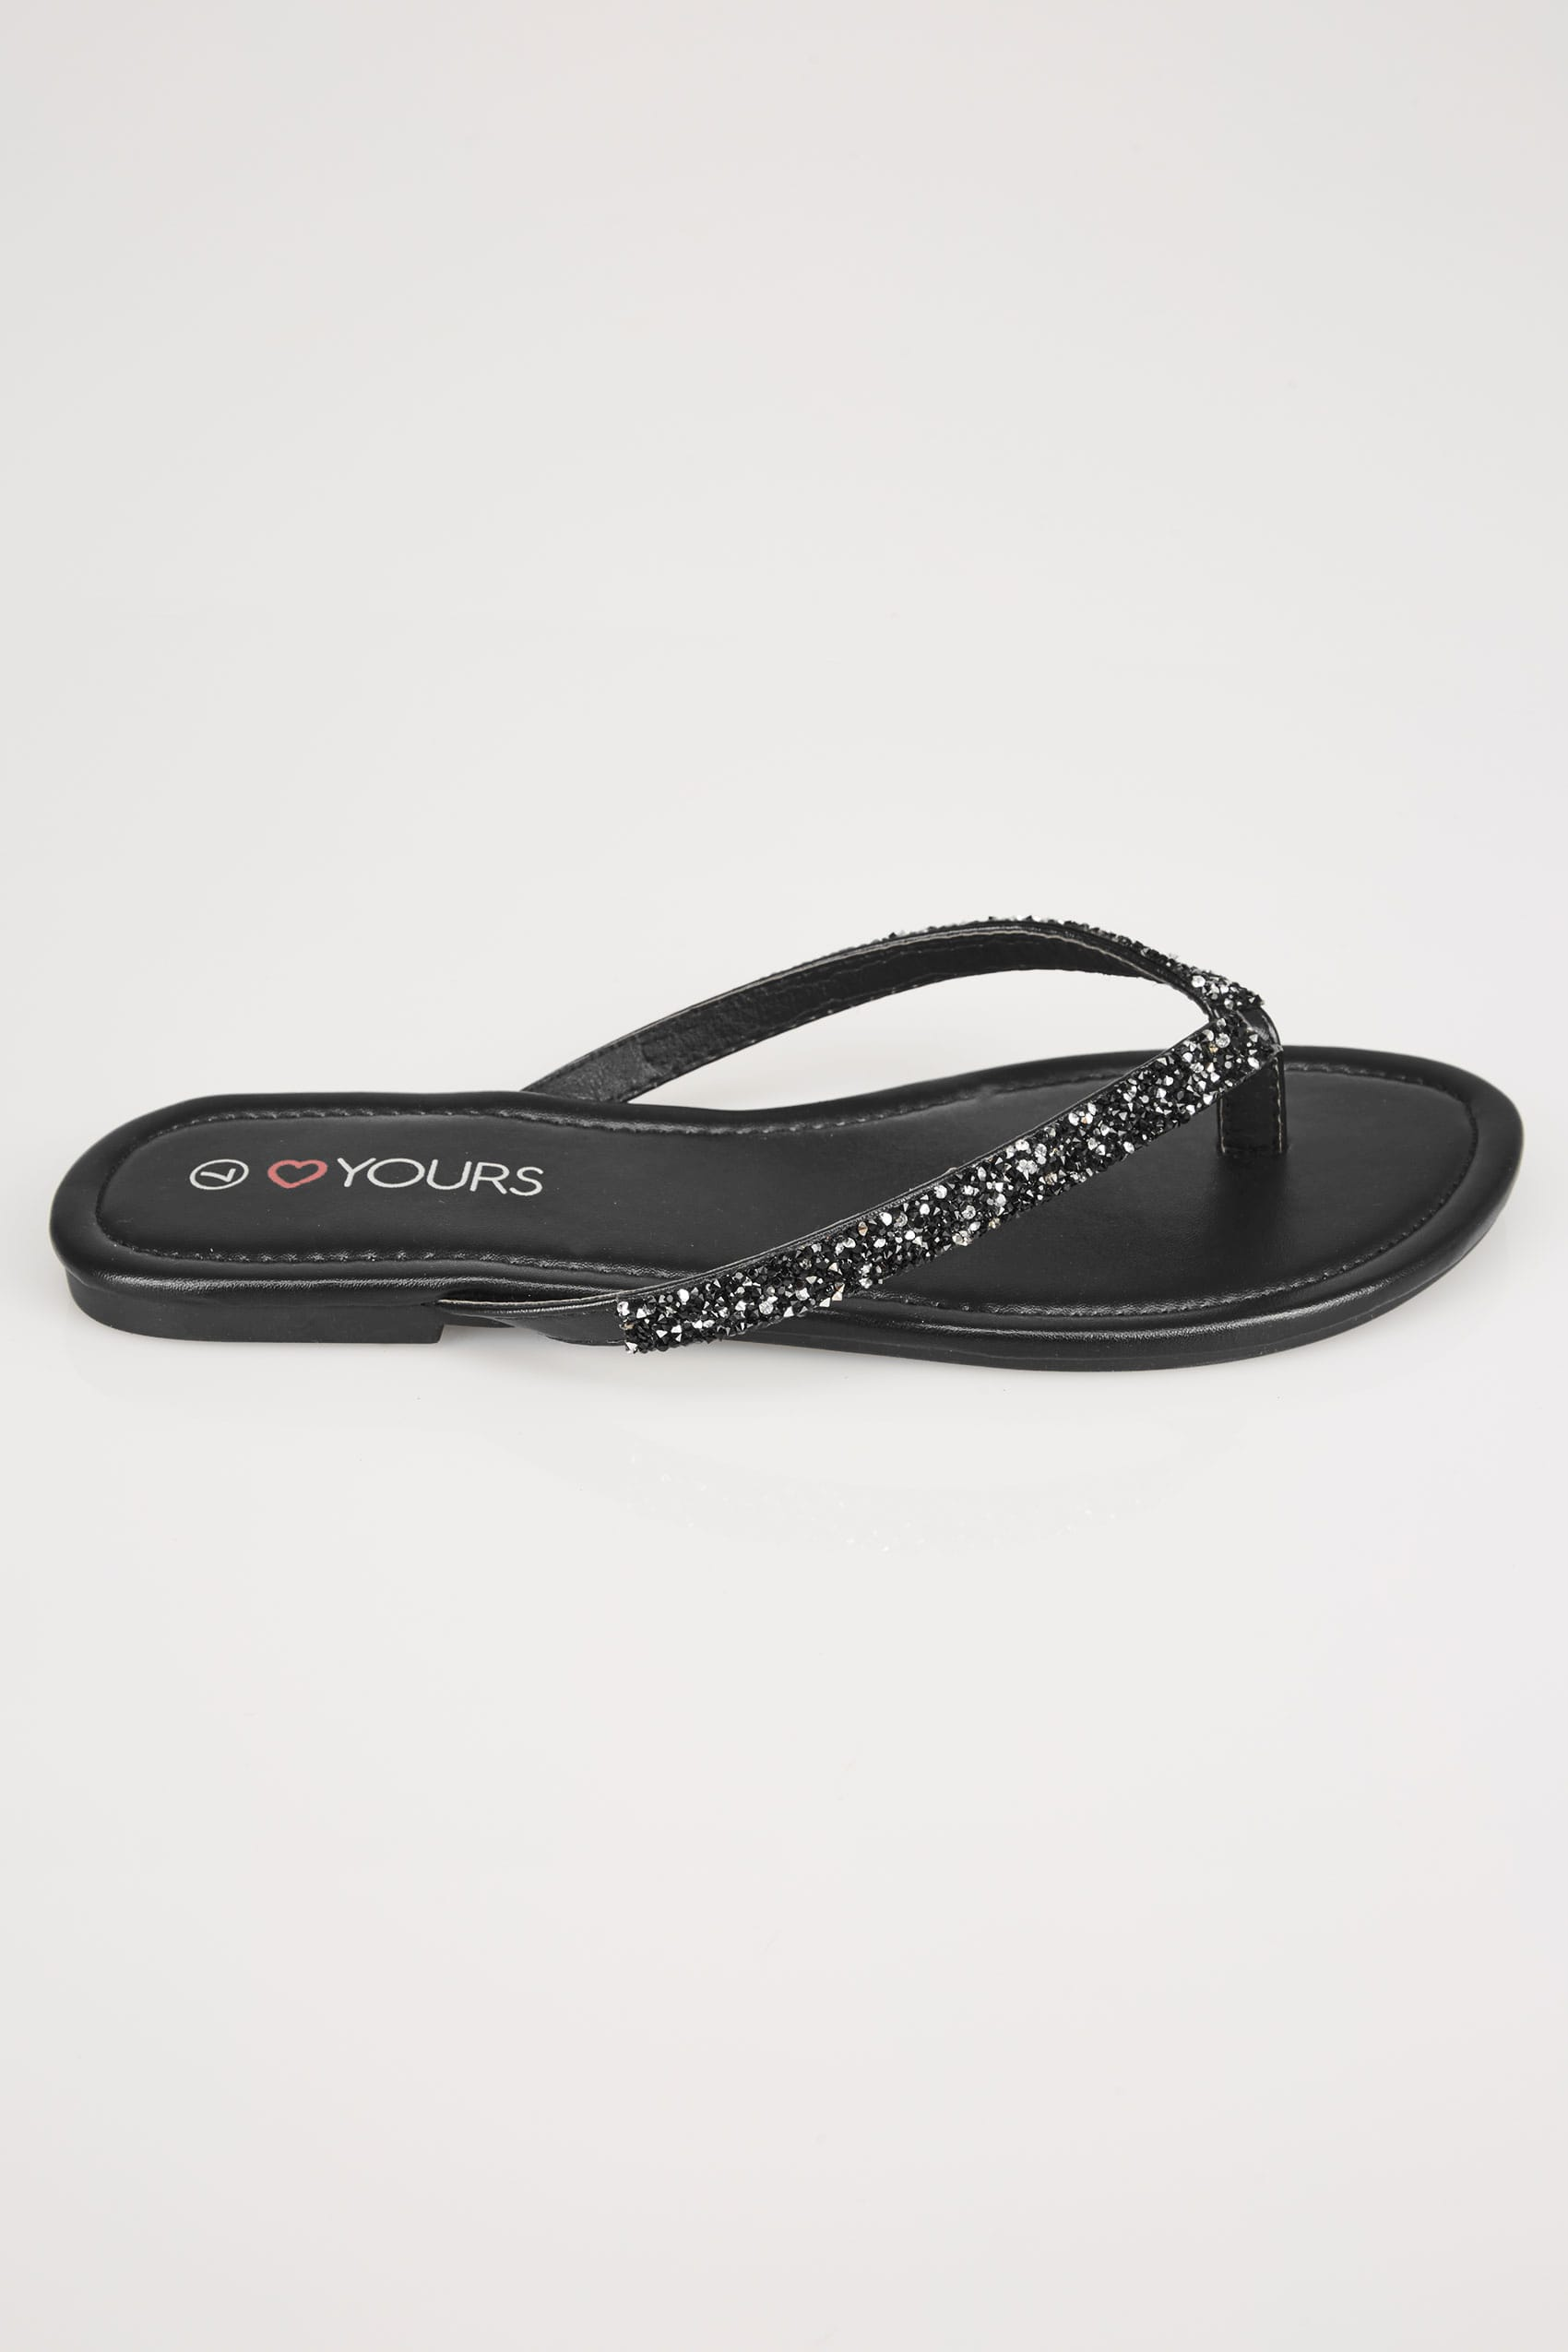 Rooms: Black Sandals With Glitter Straps In EEE Fit